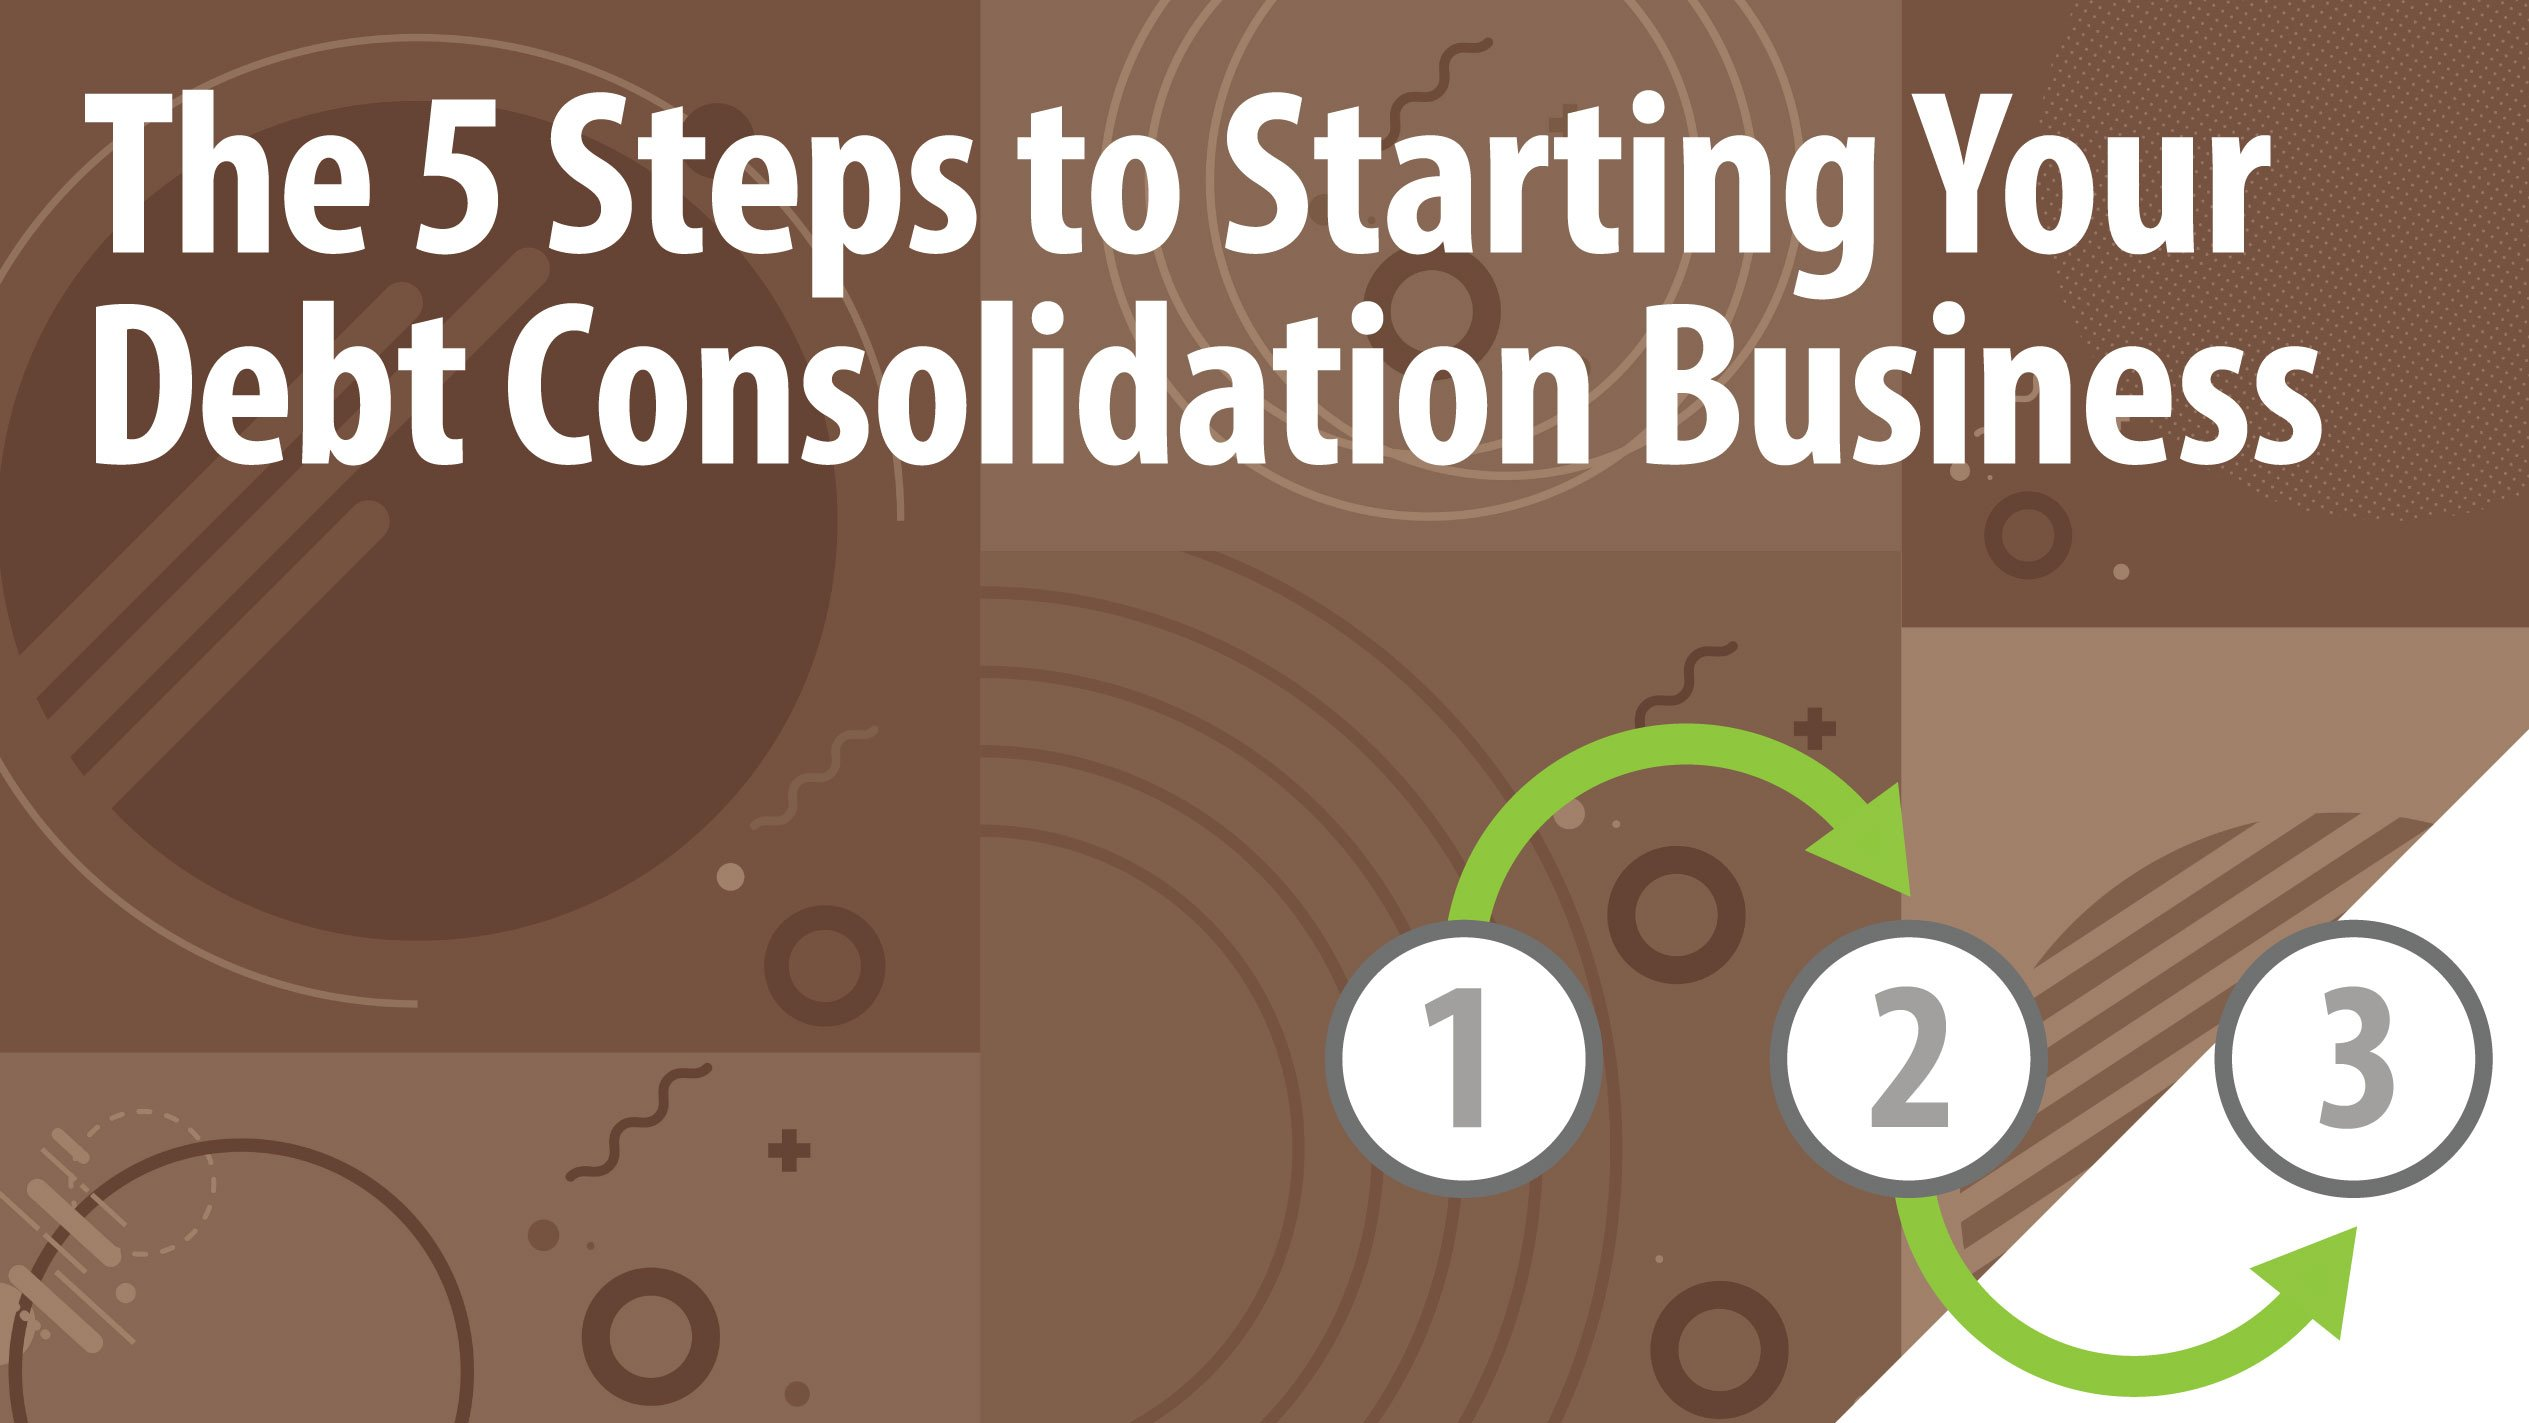 The 5 Steps to Starting Your Debt Consolidation Business